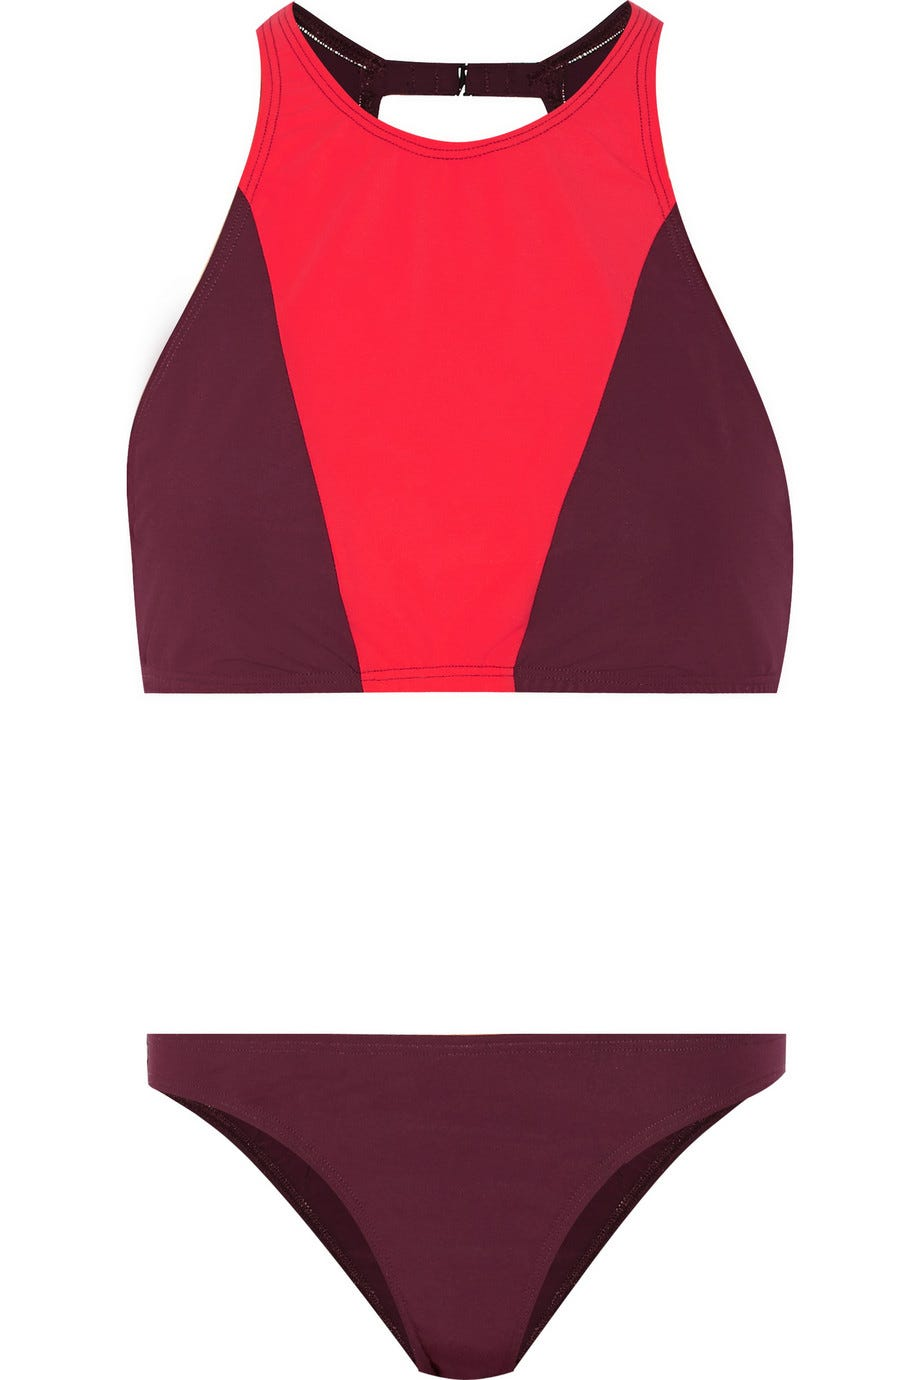 41c6b5eb7c3ce Affordable Swimsuits By Body Type